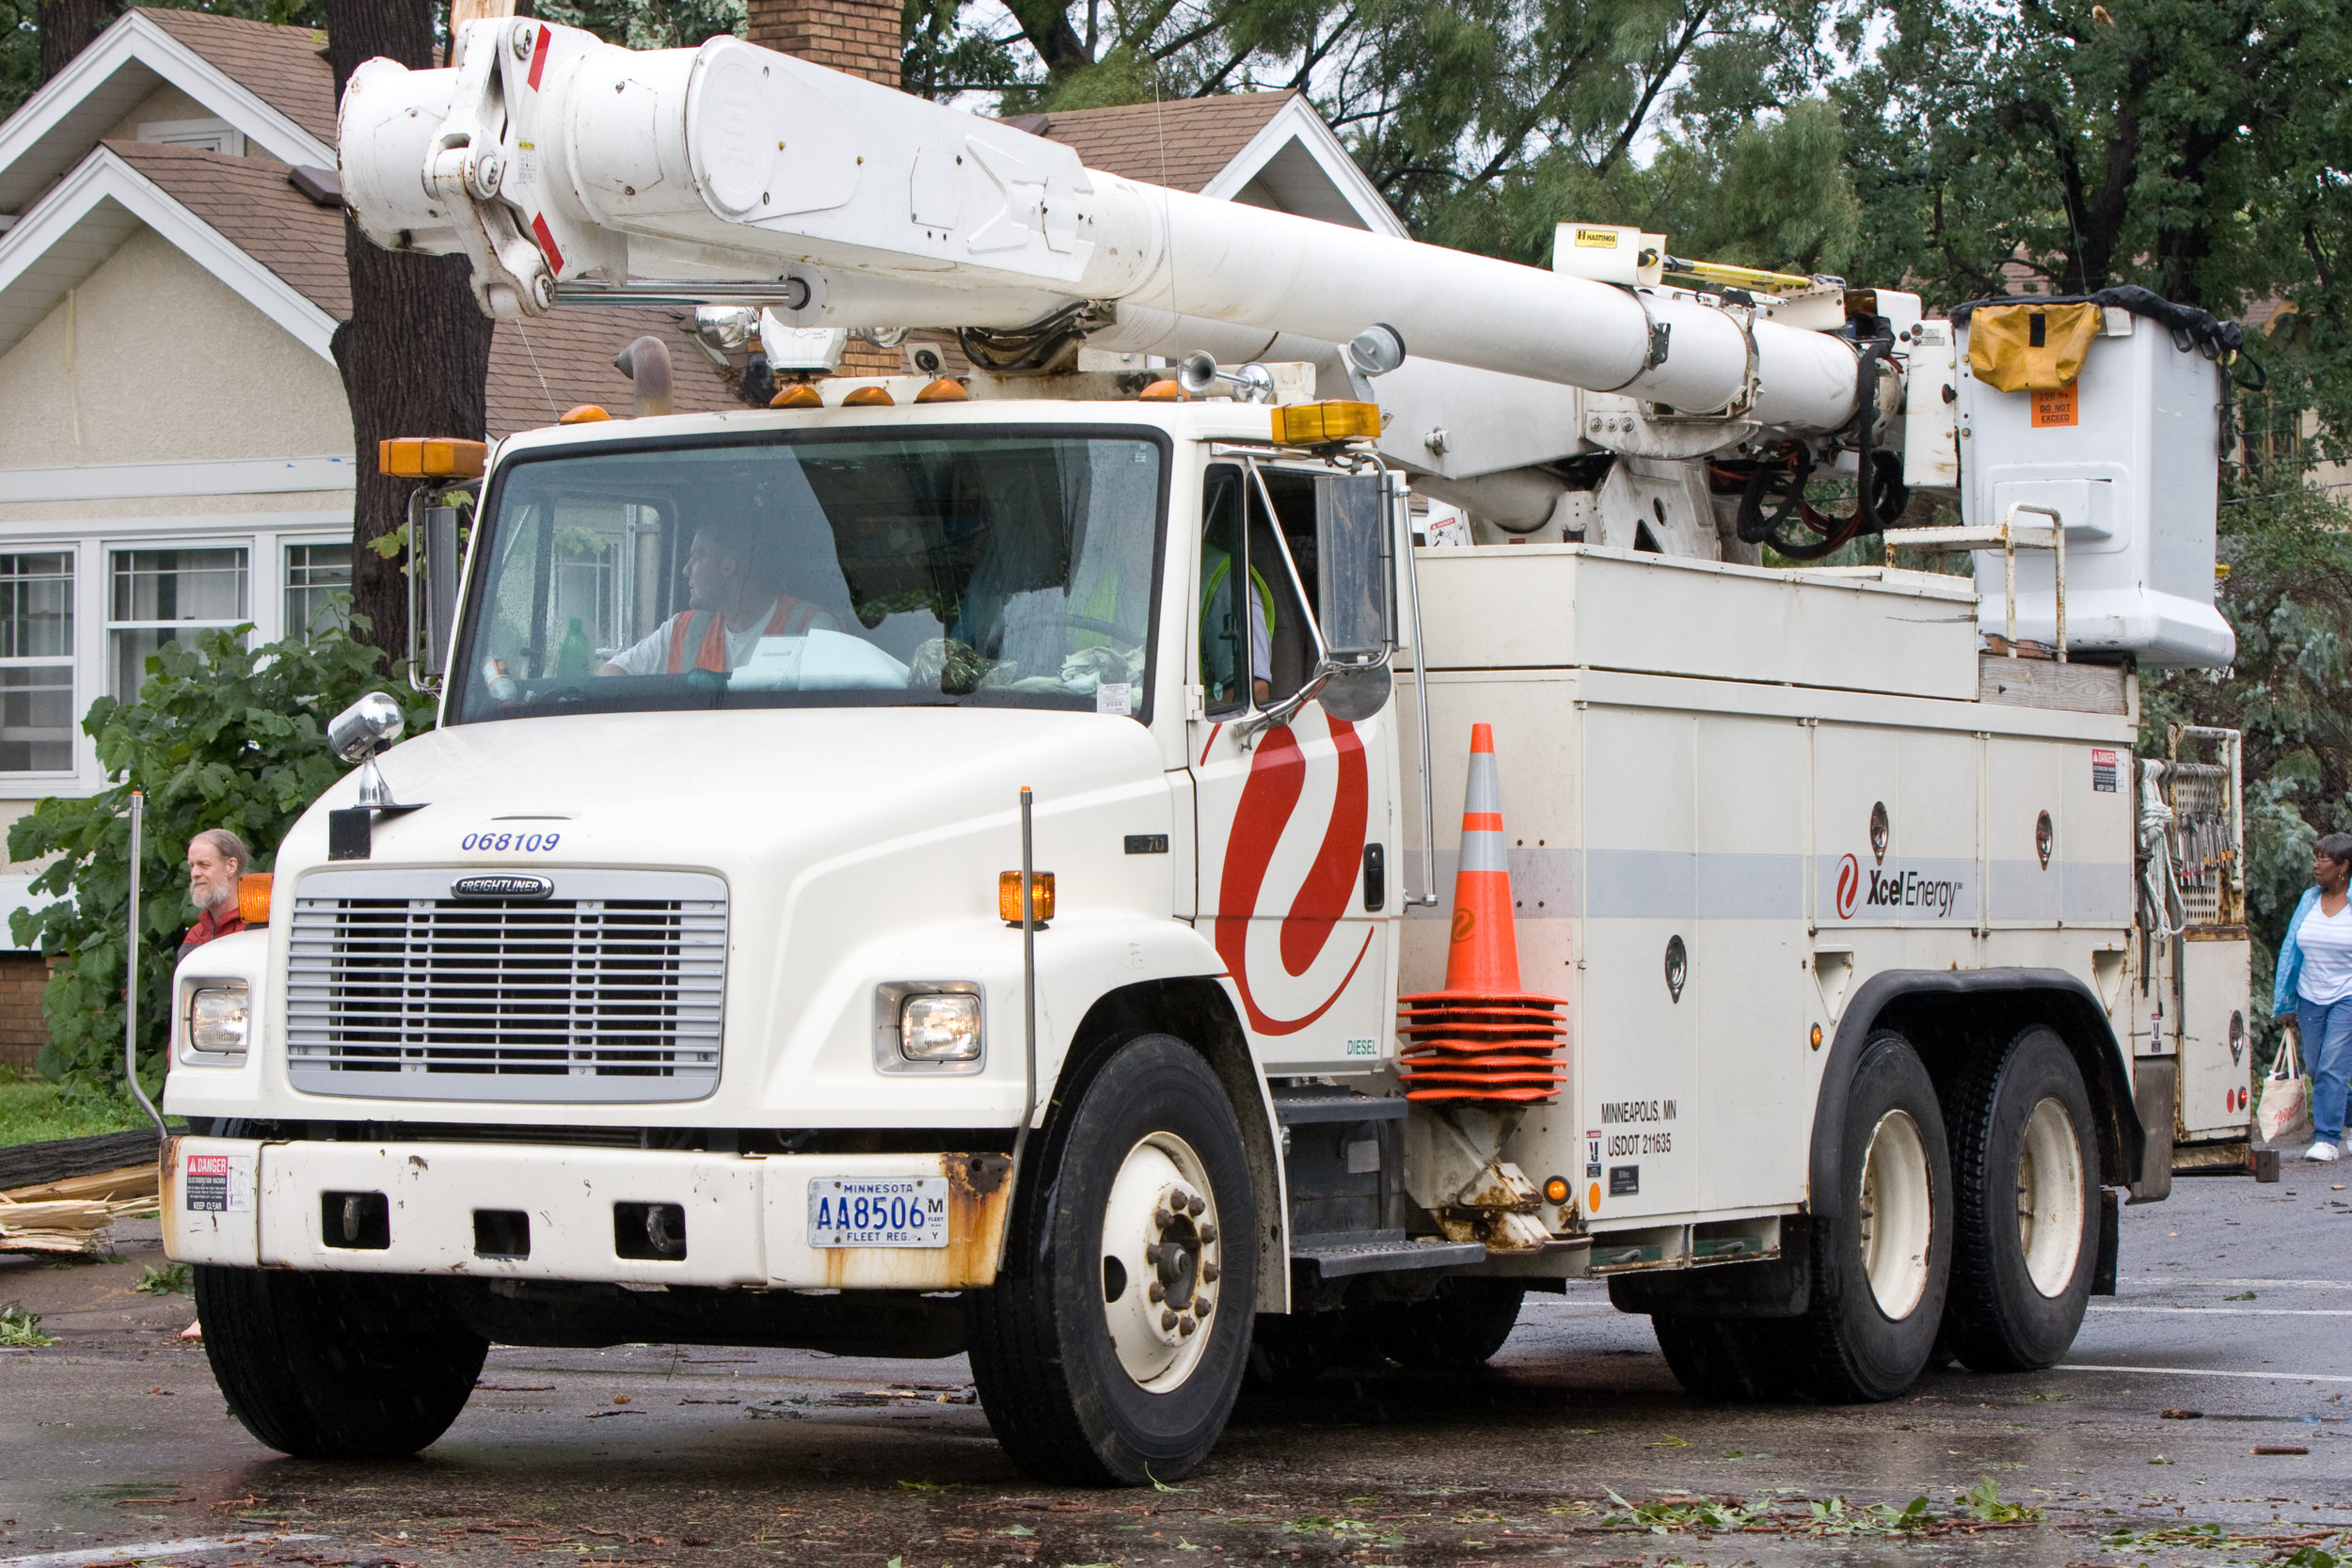 Xcel_Energy_Truck_Minneapolis_3837759131.jpg